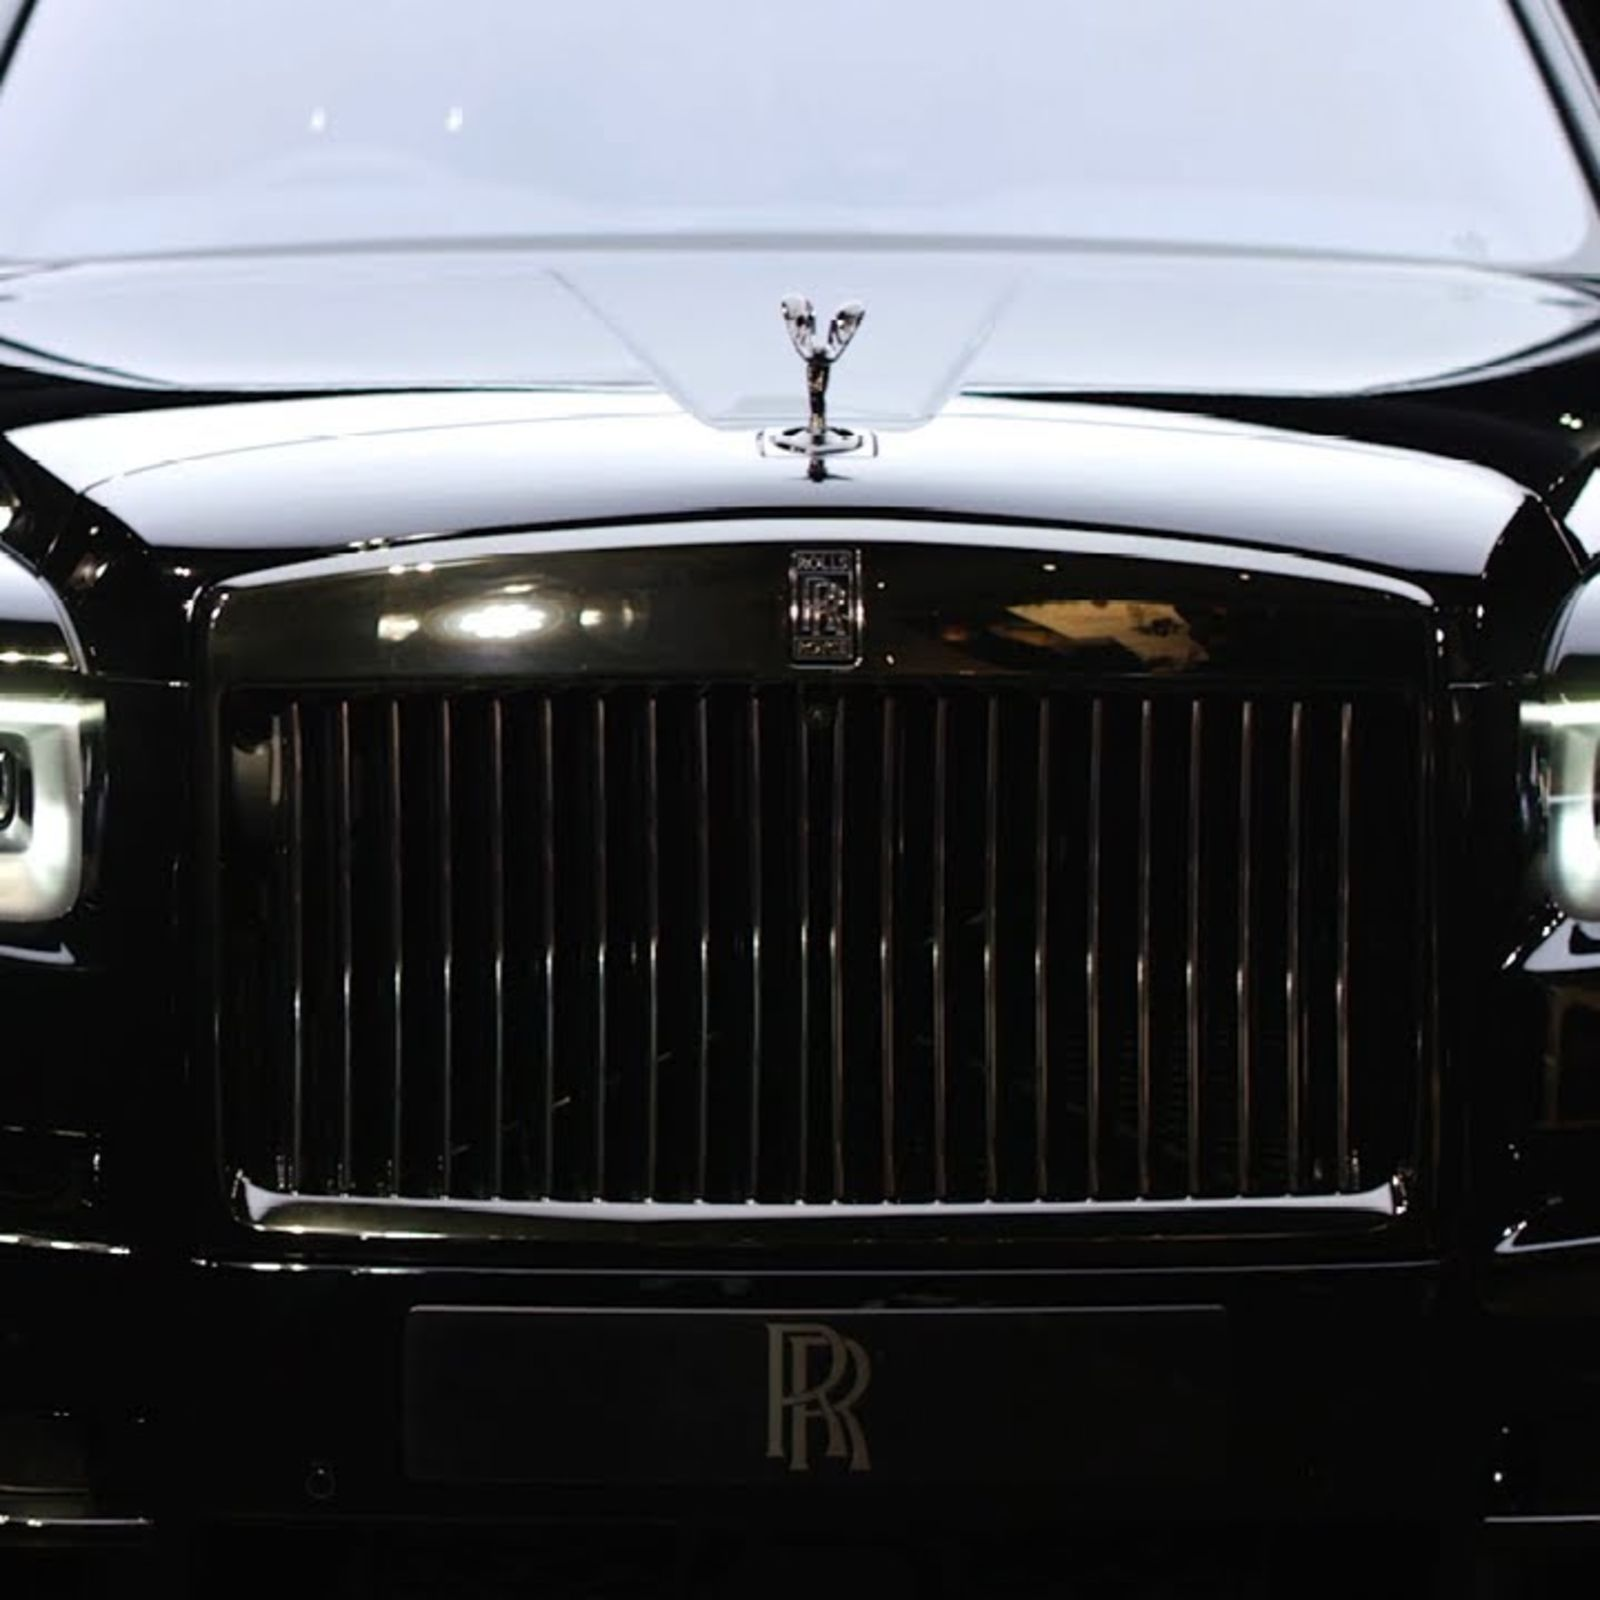 A first look at the ultra-luxe Rolls-Royce Cullinan Black Badge